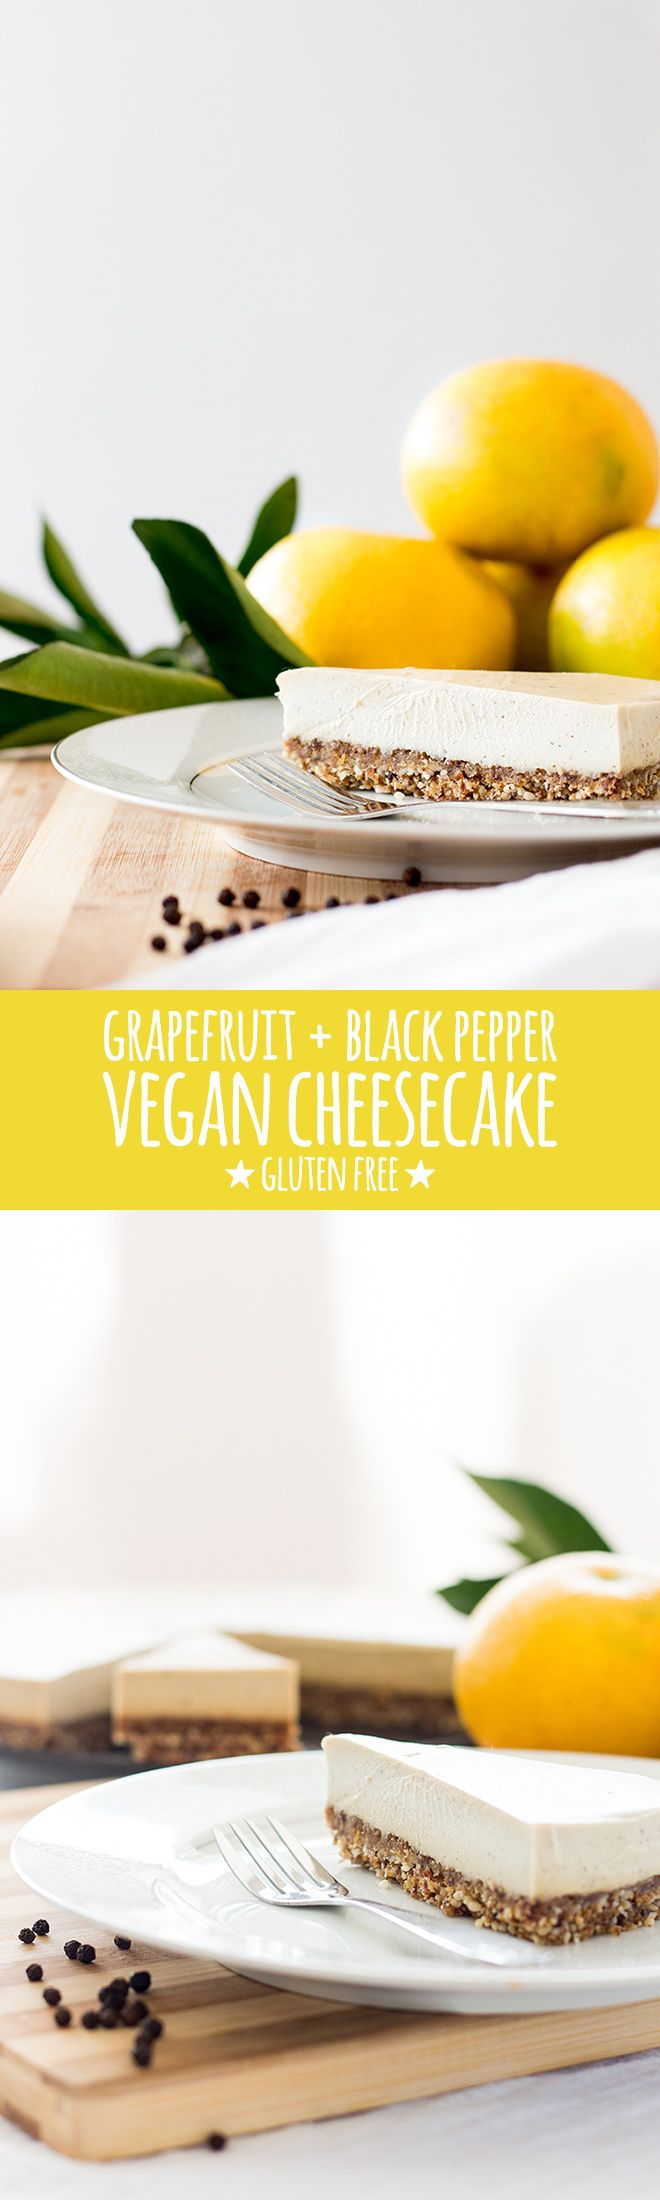 A beautifully creamy cashew-based vegan and gluten free cheesecake with grapefruit and a touch of black pepper. It's an unusual but stunning combination. via @quitegoodfood